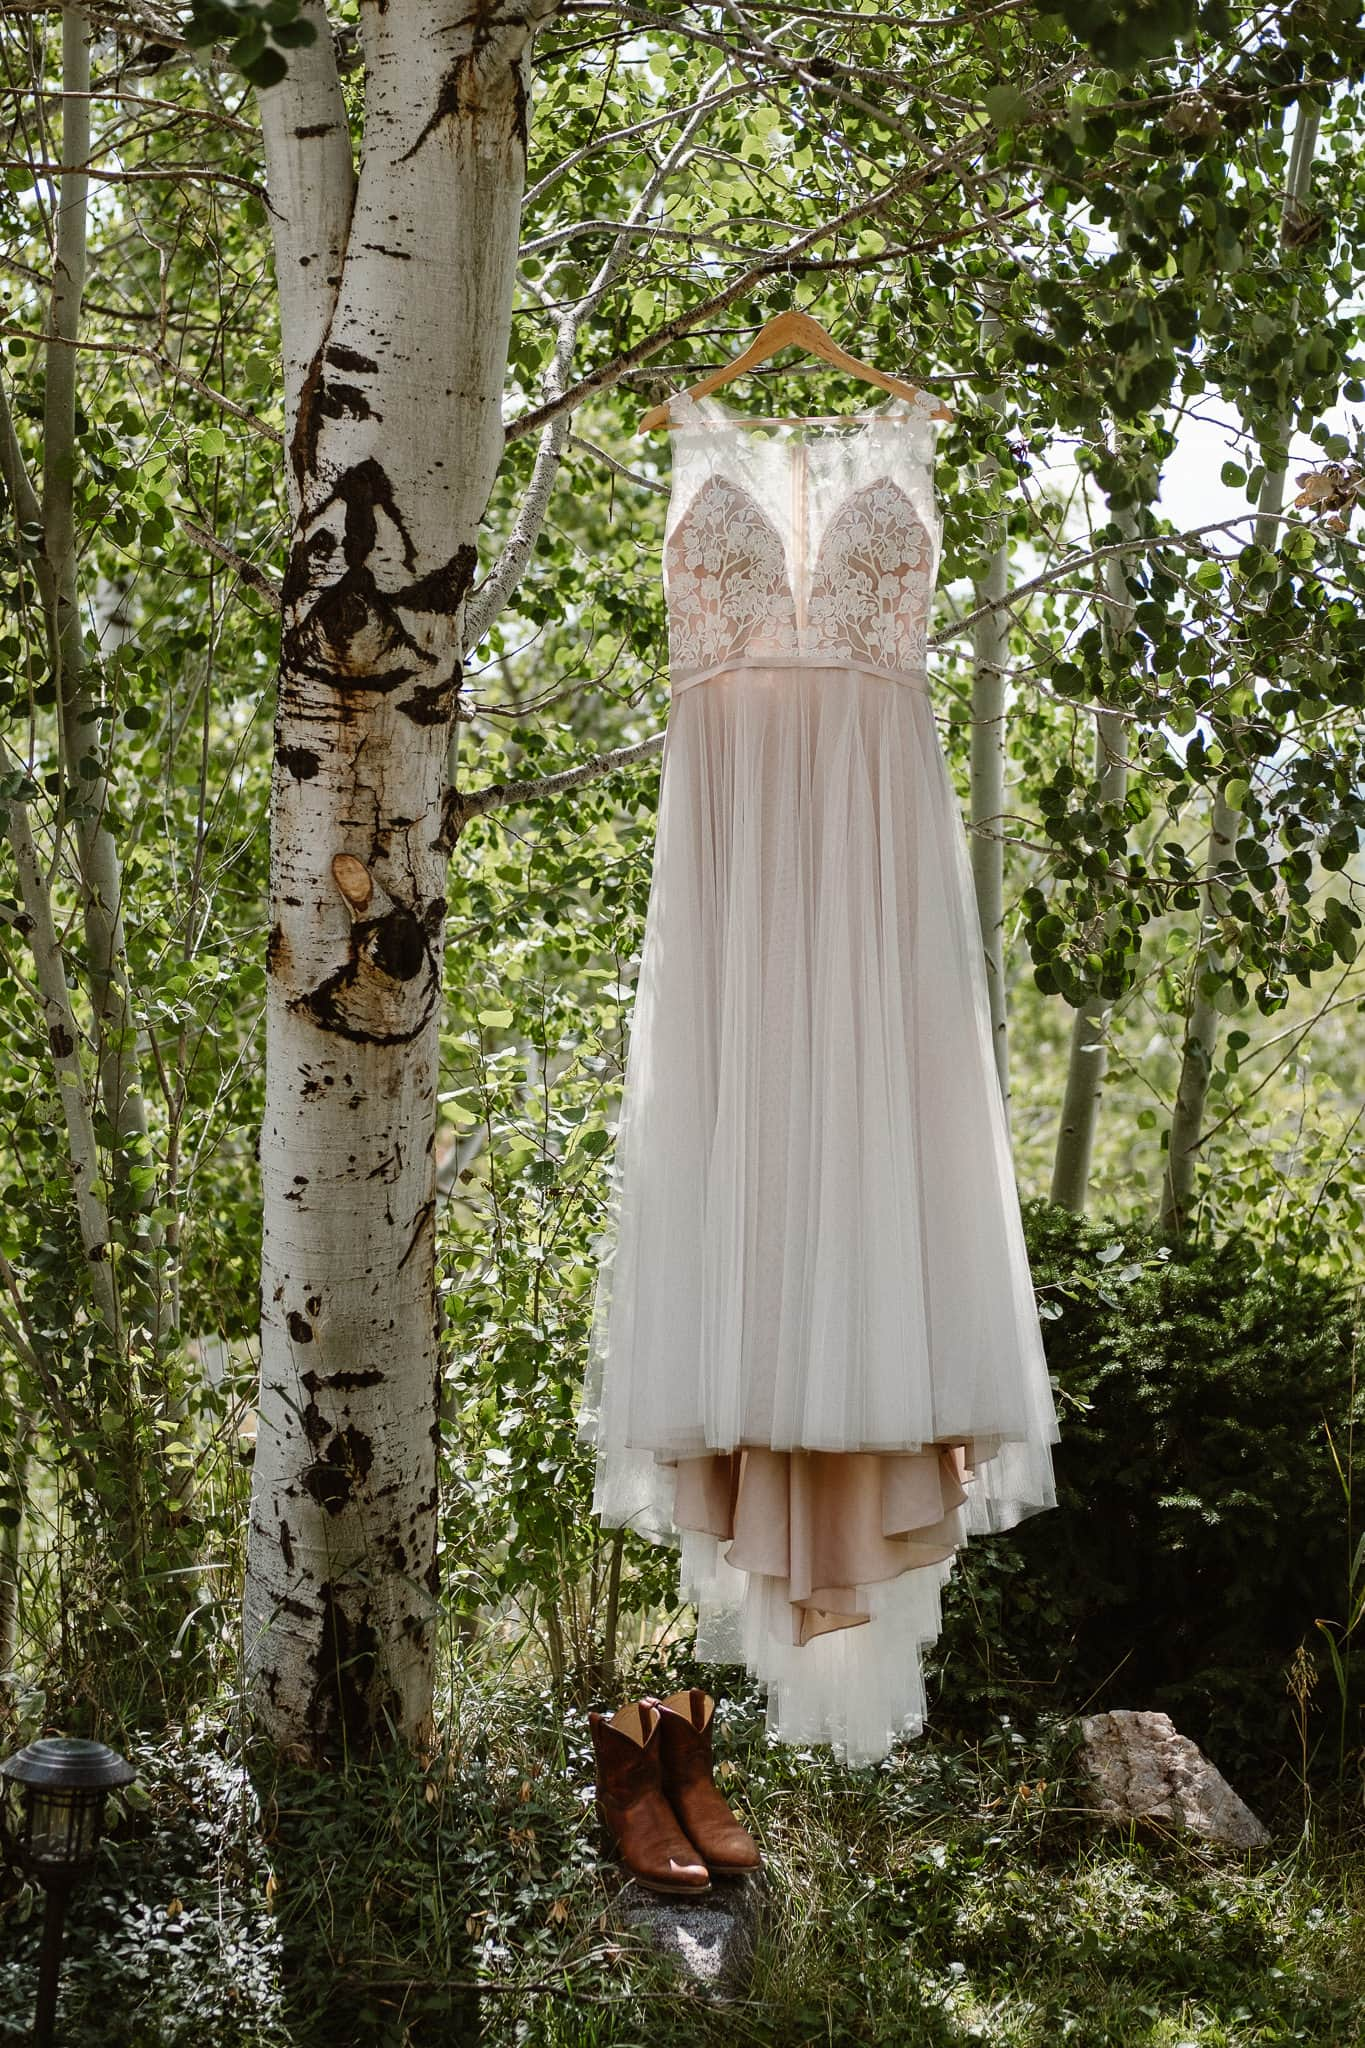 Steamboat Springs wedding photographer, La Joya Dulce wedding, Colorado ranch wedding venues, wedding dress hanging from aspen tree, wedding dress with lace top, tulle skirt wedding dress, aspen trees